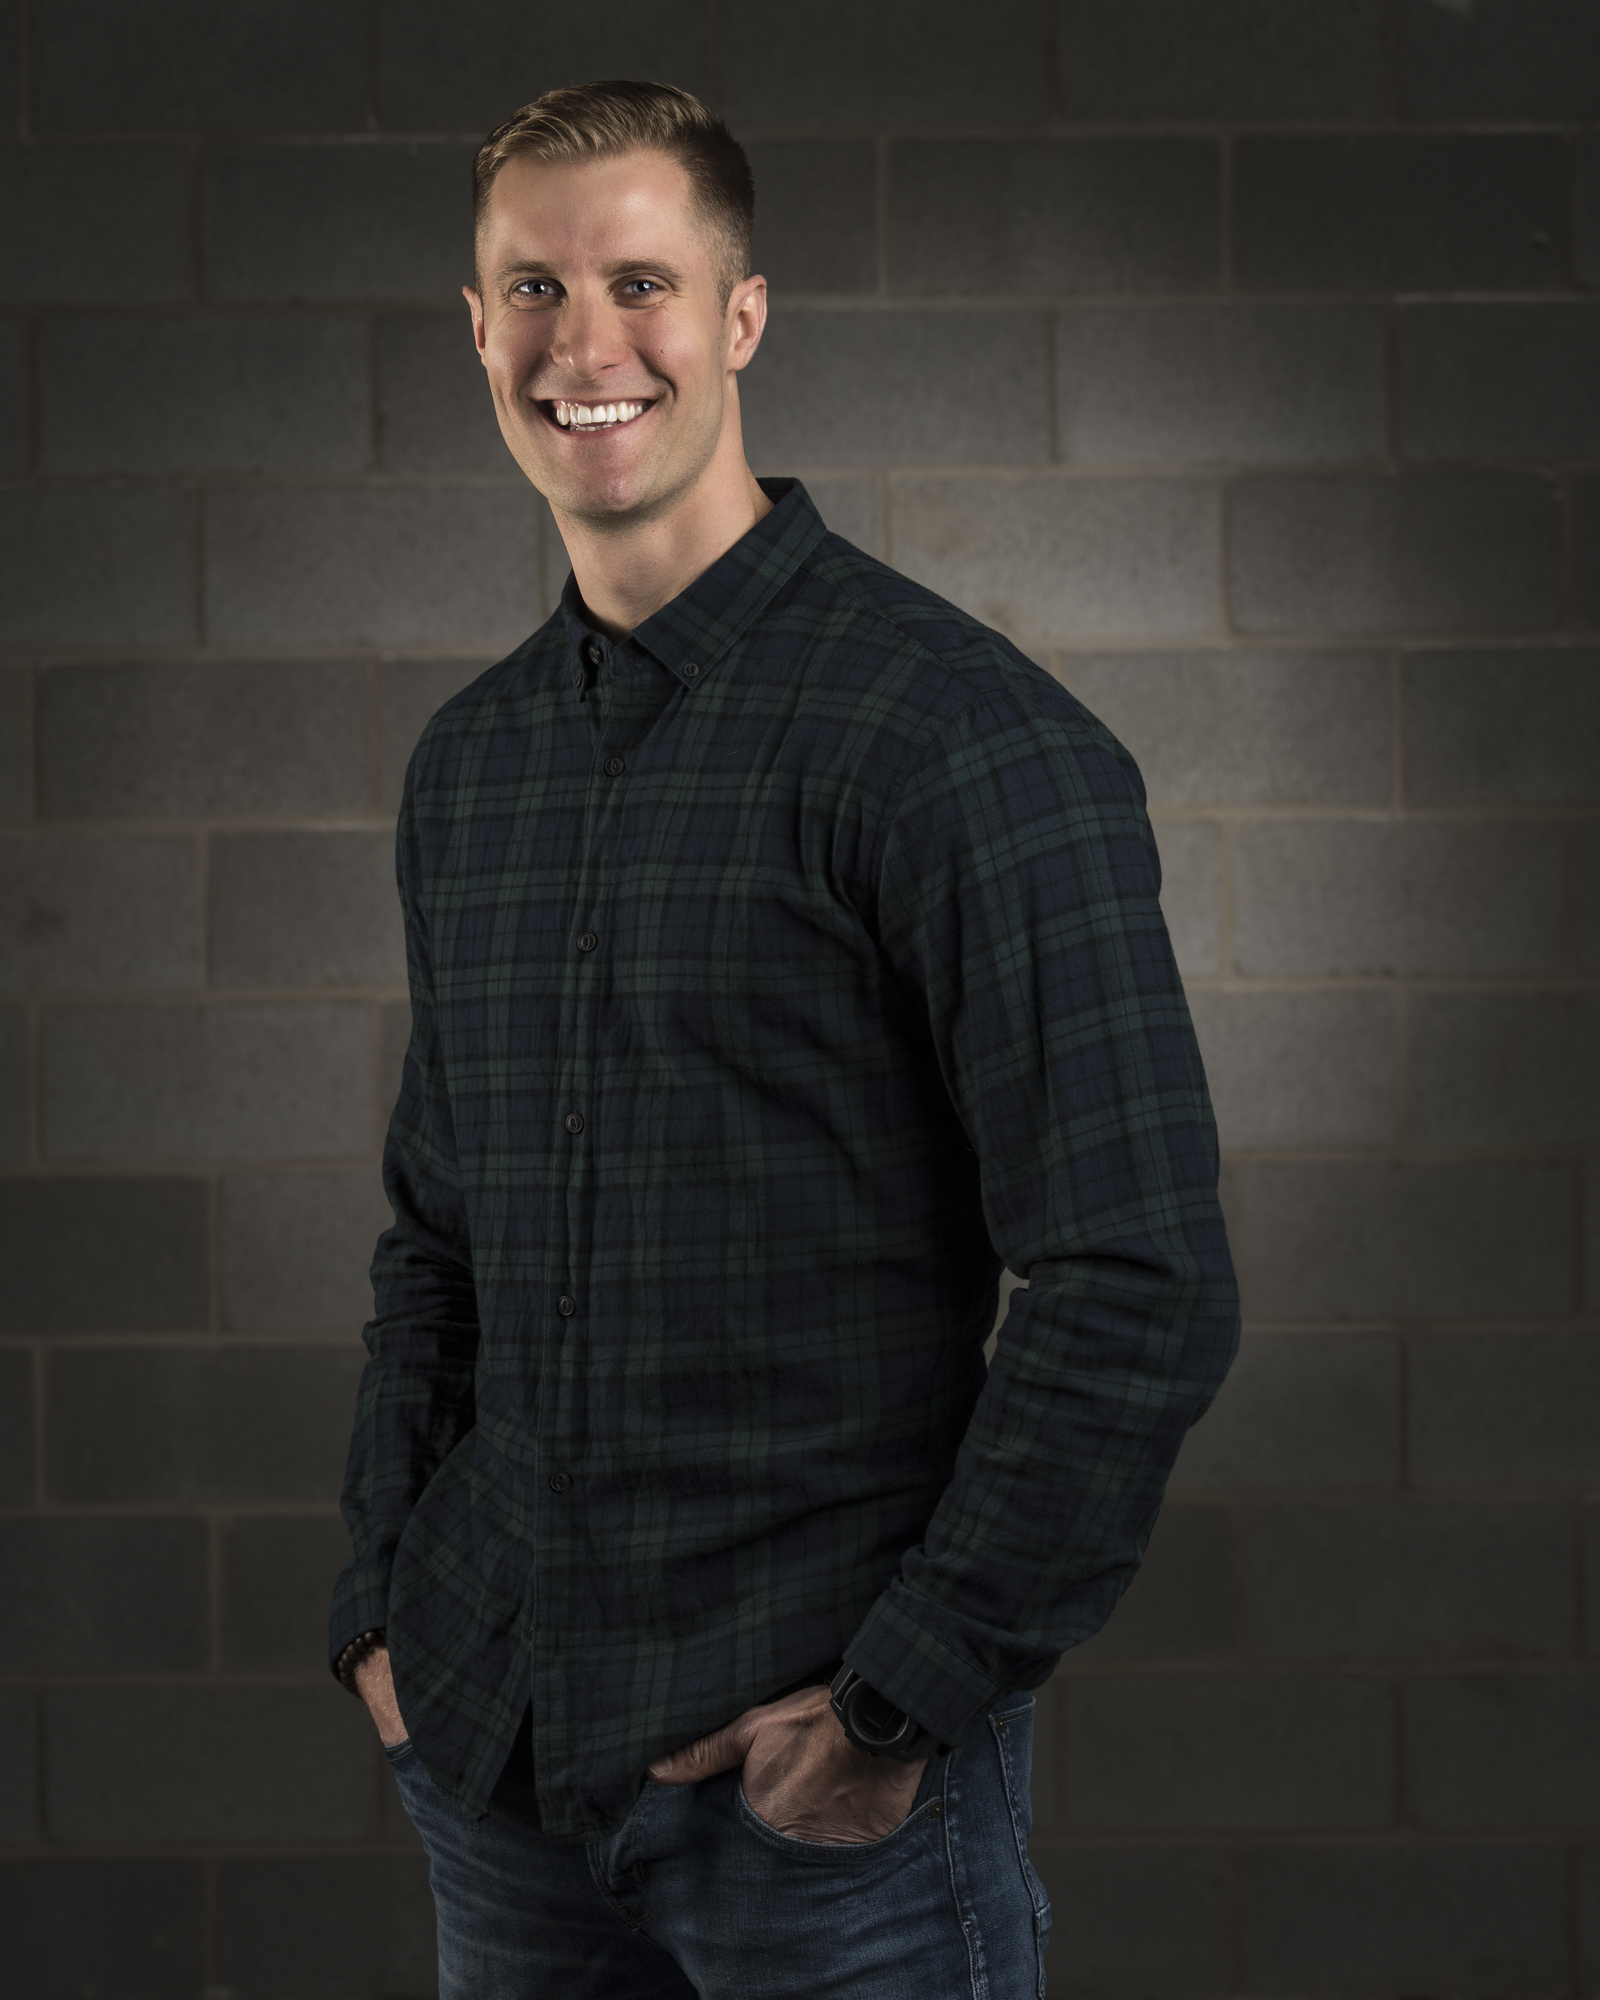 tall blond guy smiling with his hands on the pockets